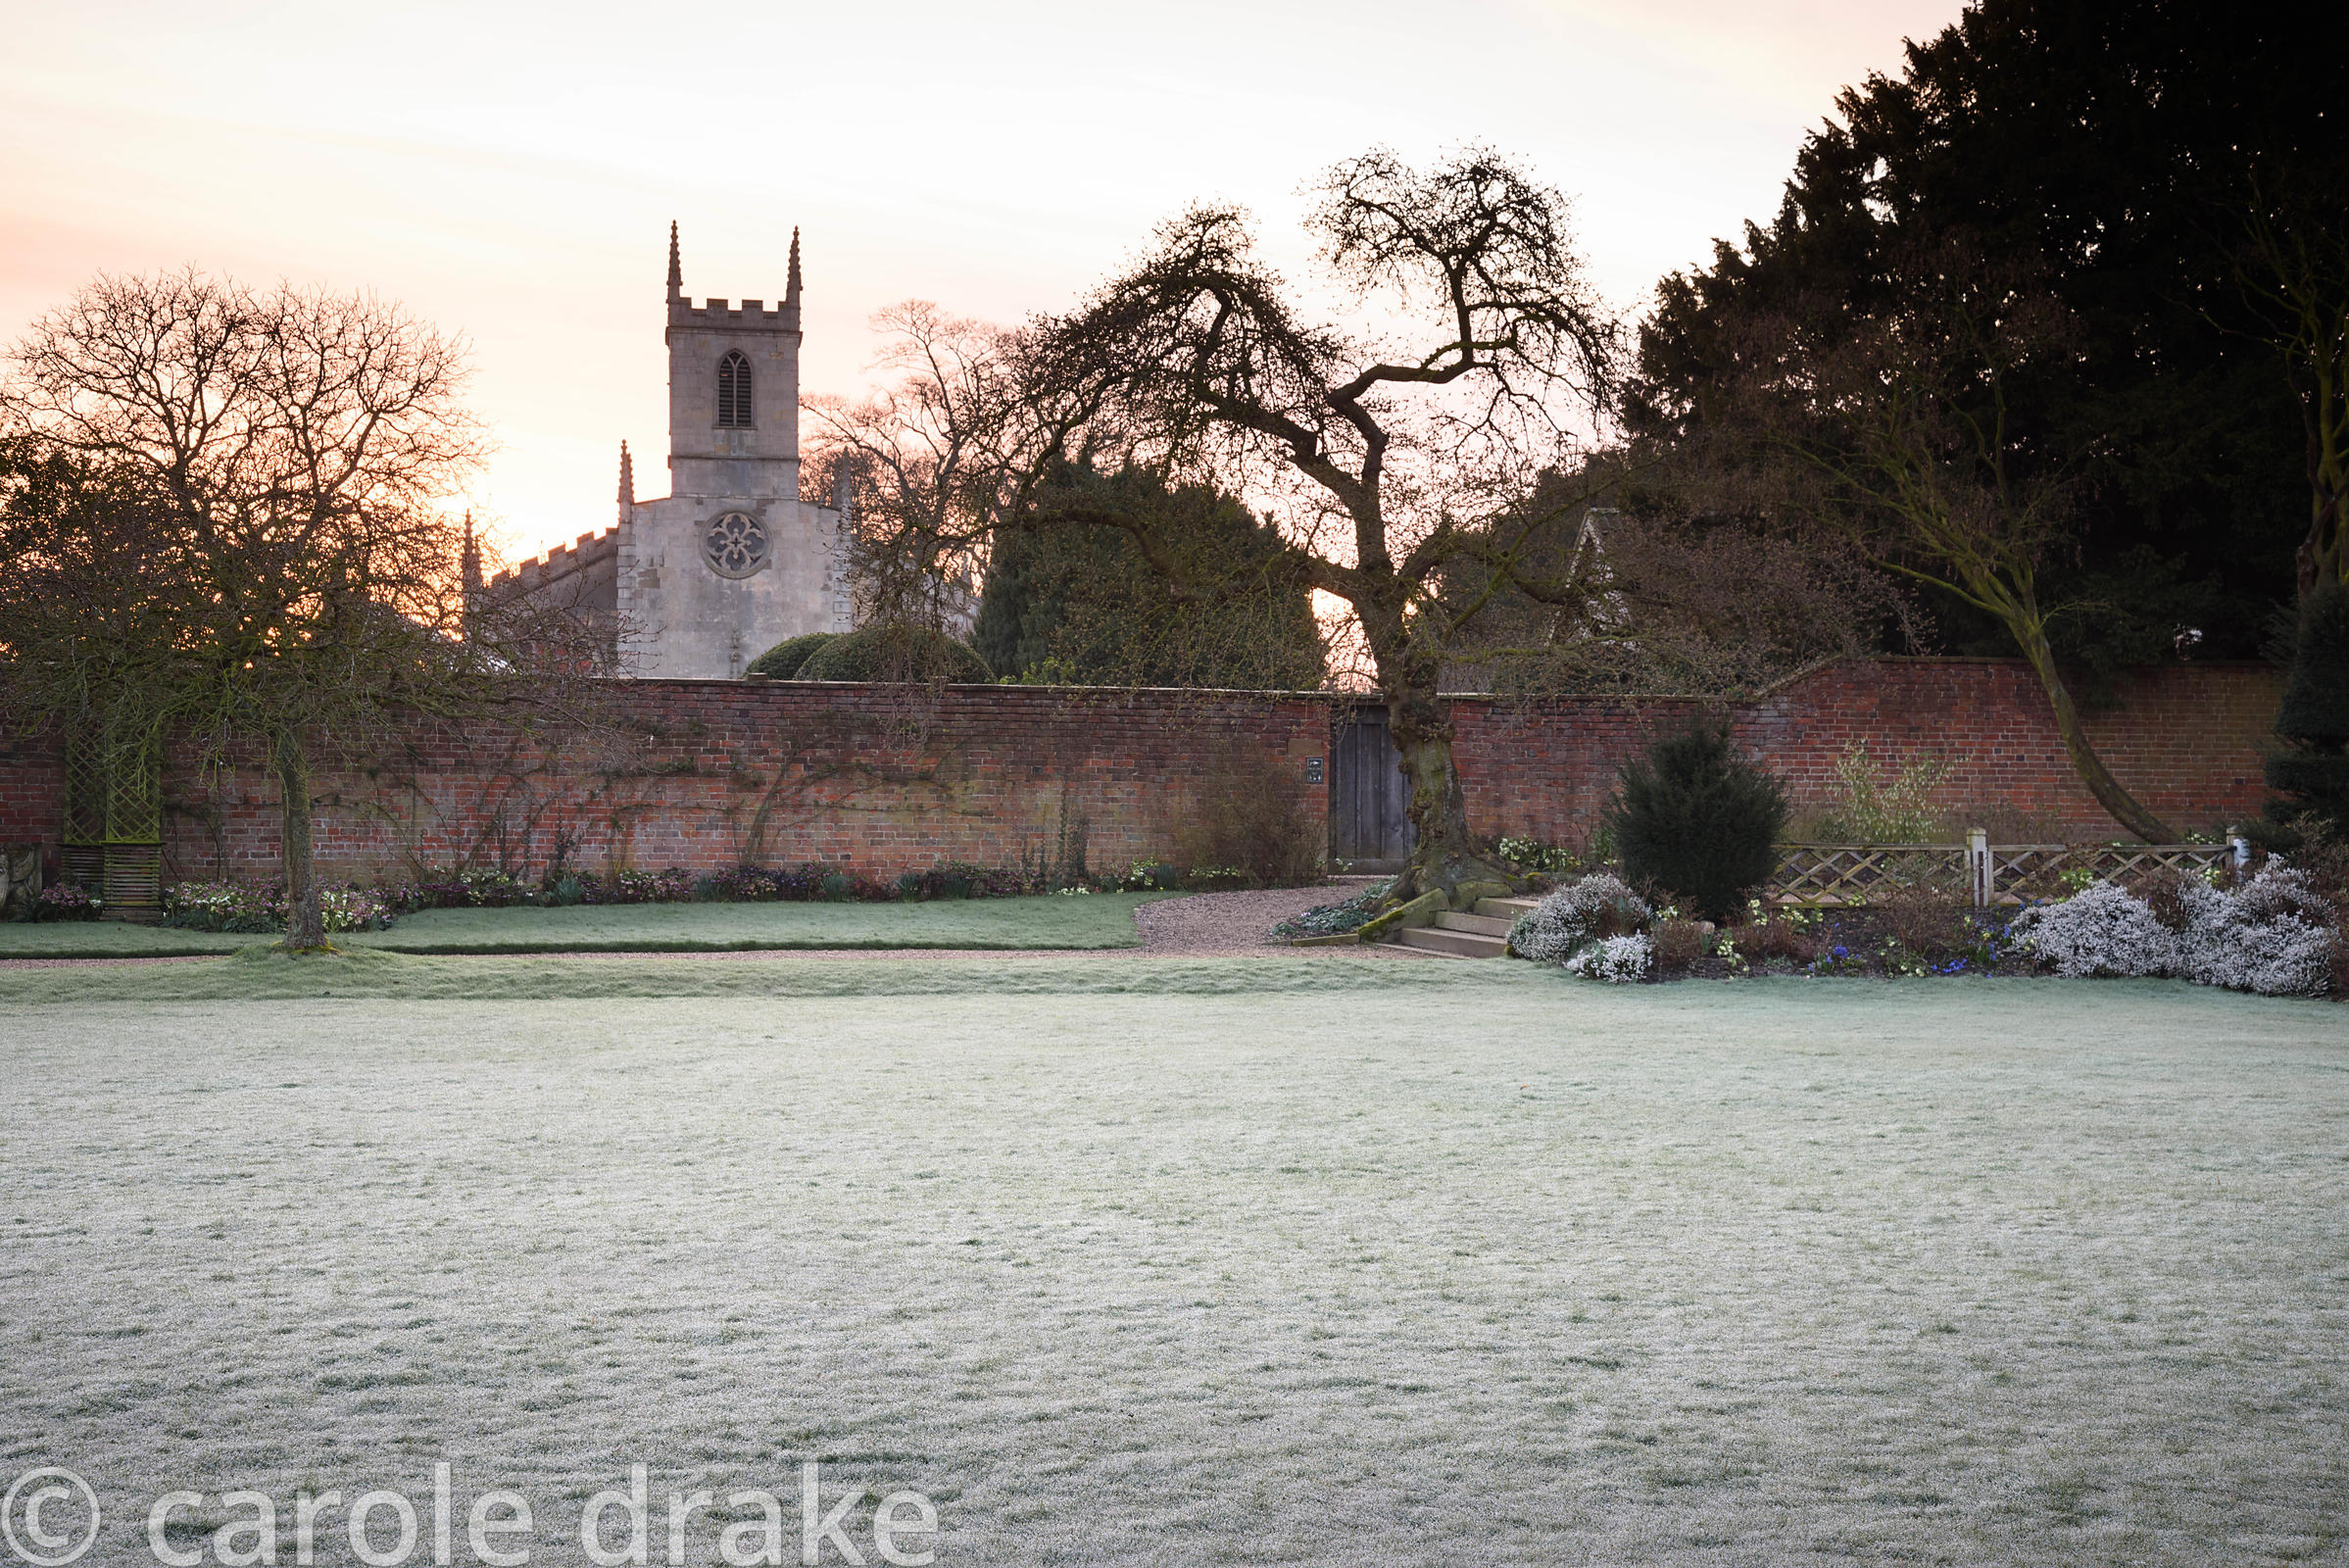 The croquet lawn on a frosty March morning at Doddington Hall, Lincolnshire with St Peter's Church